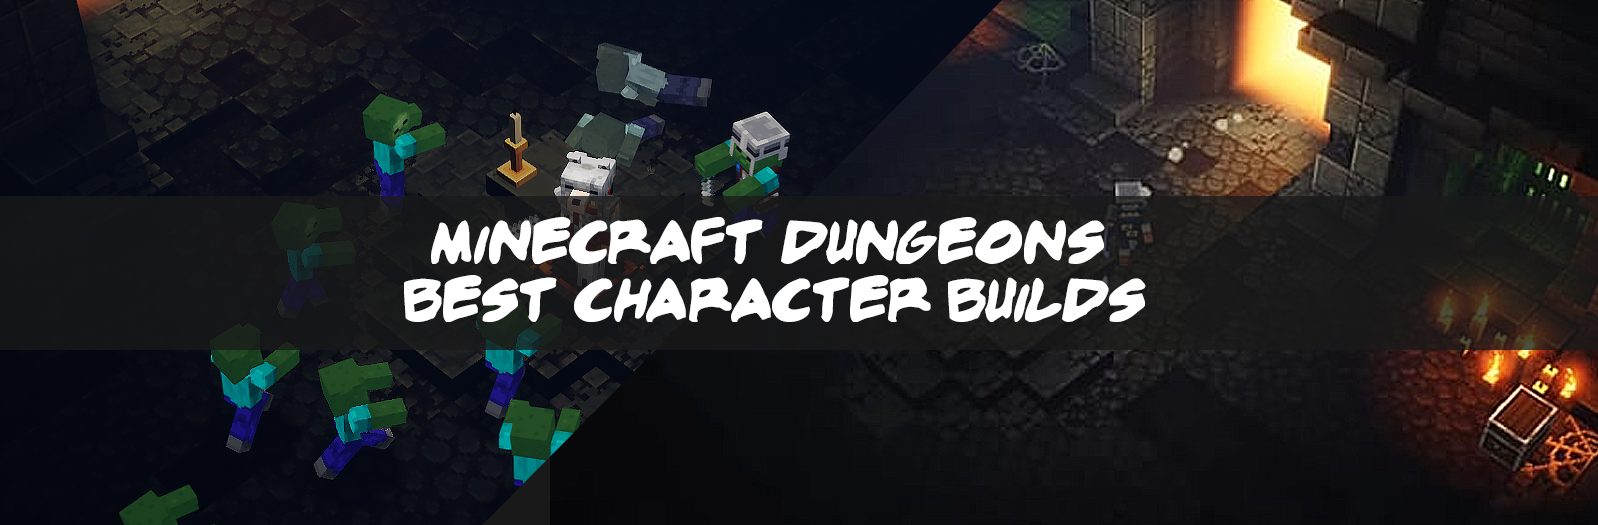 Minecraft Dungeons Best Character Builds